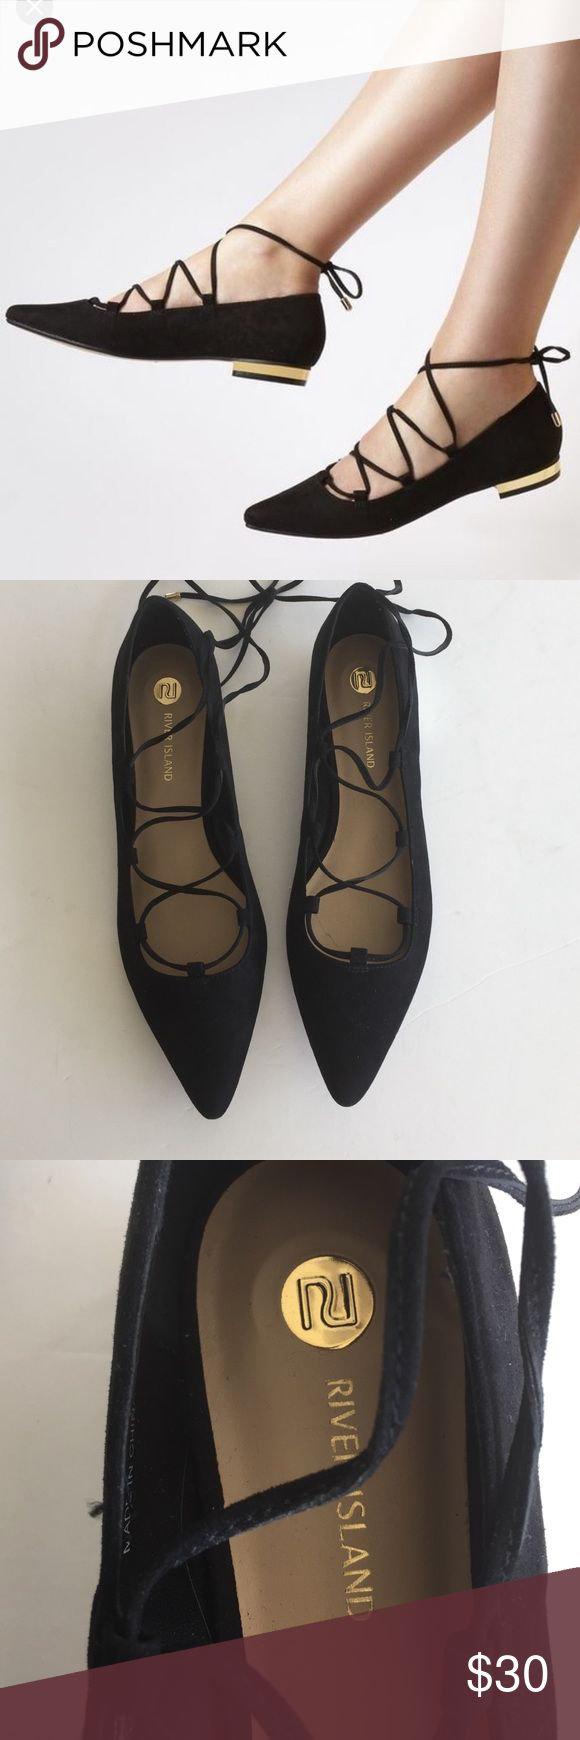 River Island Women's Black Ghillie Lace Up  Flats River Island Women's Black Ghillie Lace Up Pointed Flats bloggers fav! River Island Shoes Flats & Loafers